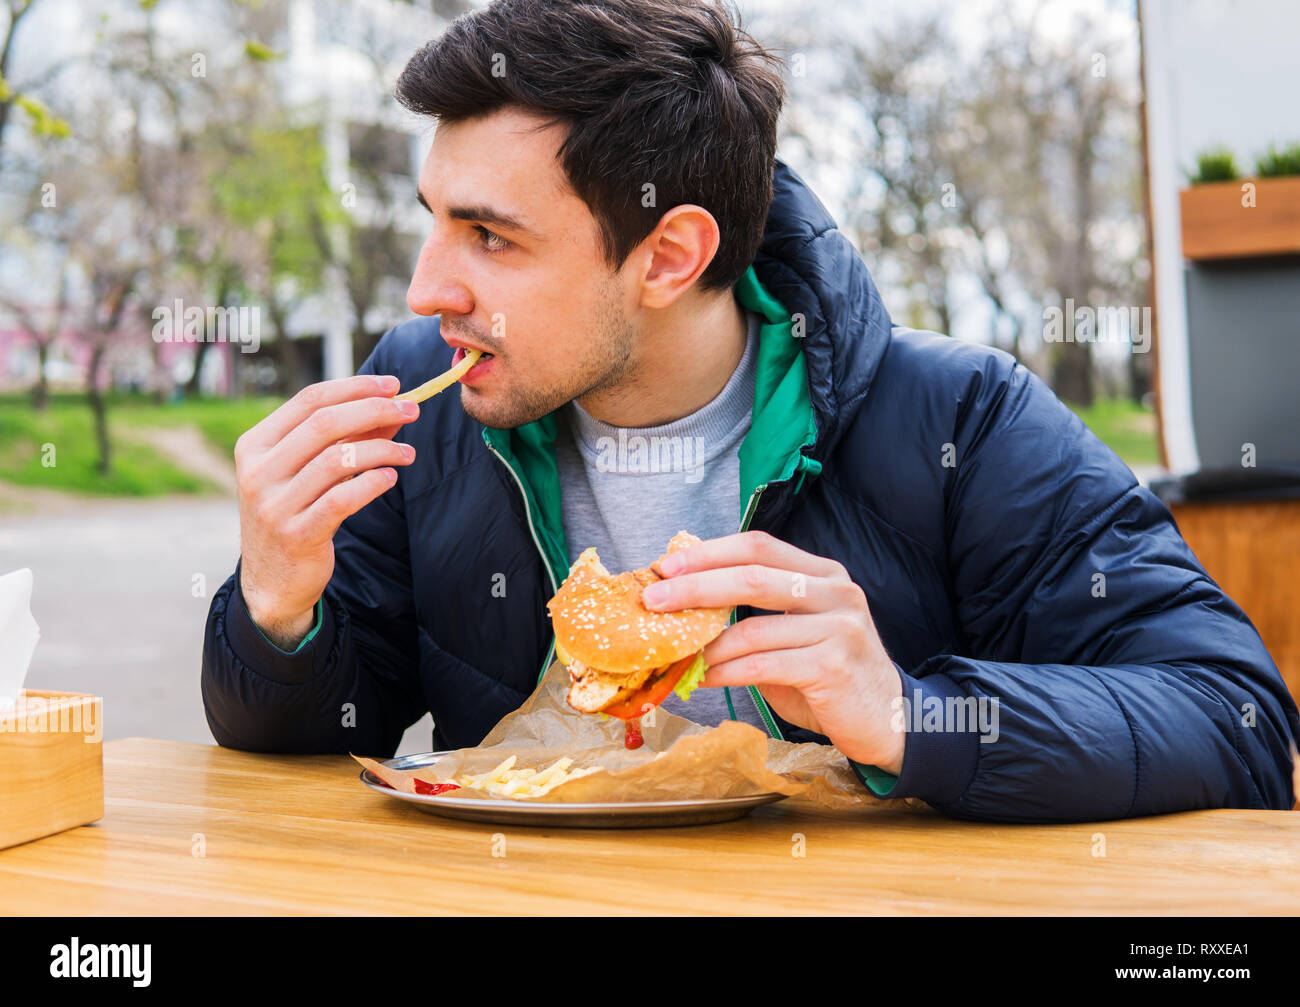 man eating fried potatoes with a burger in street food cafe Stock Photo